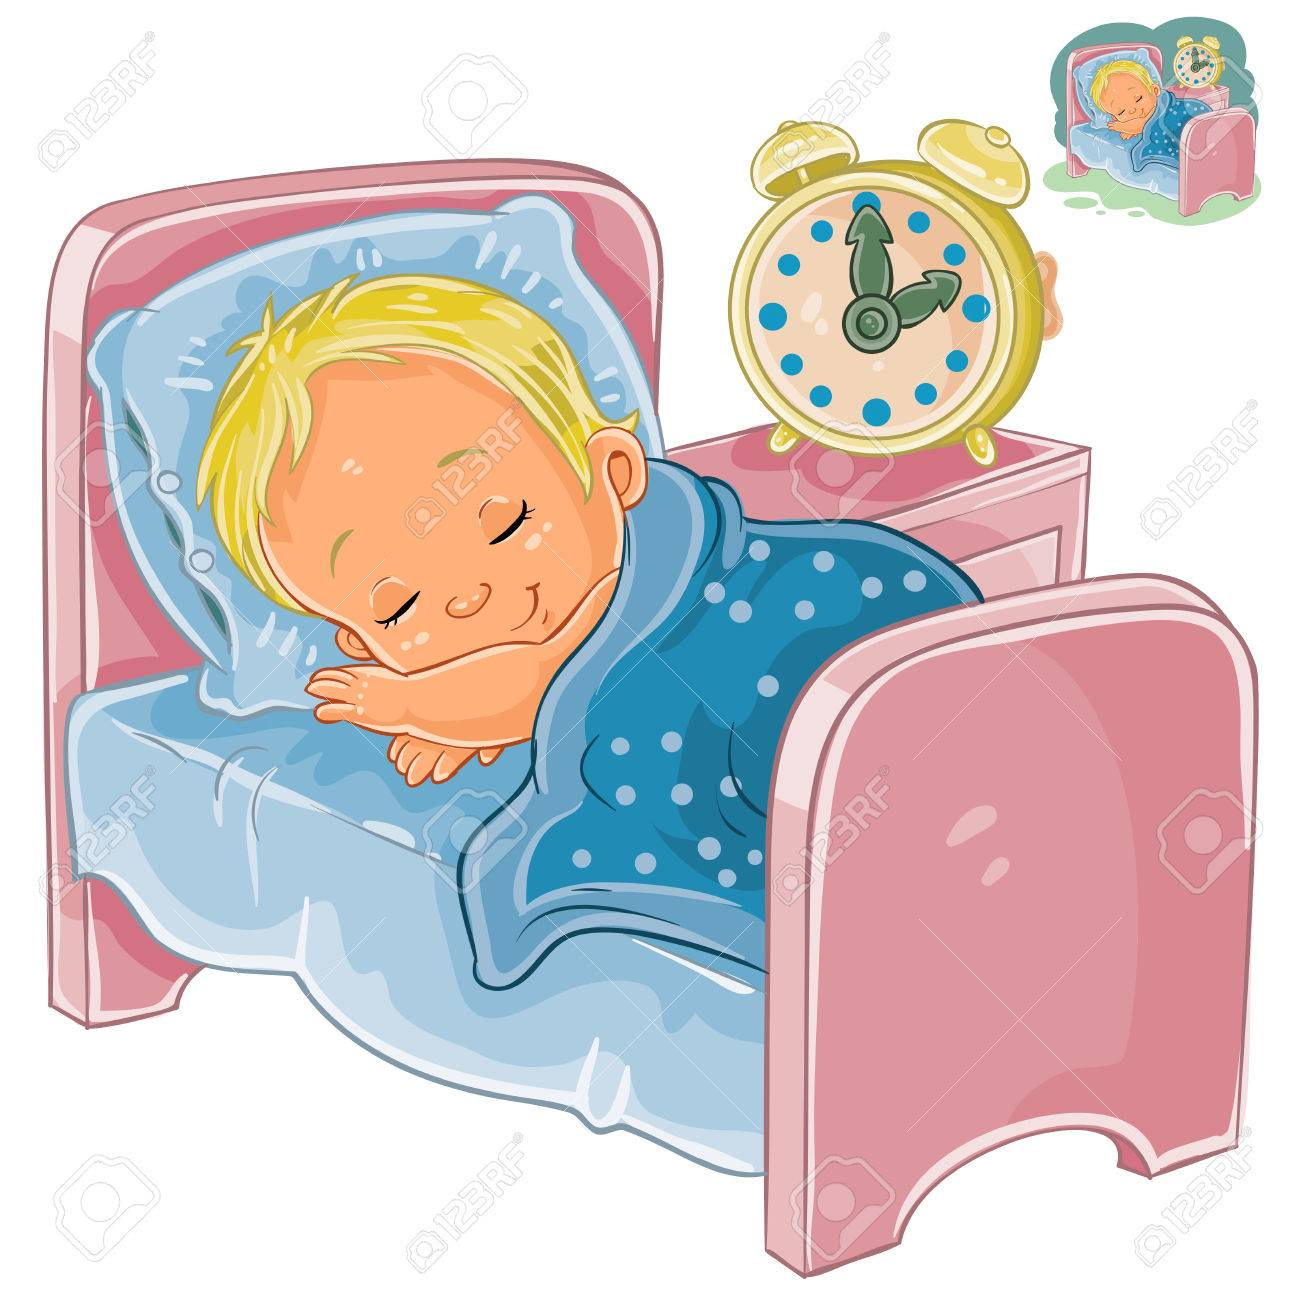 Vector clip art illustration of a little baby sleeping in his...